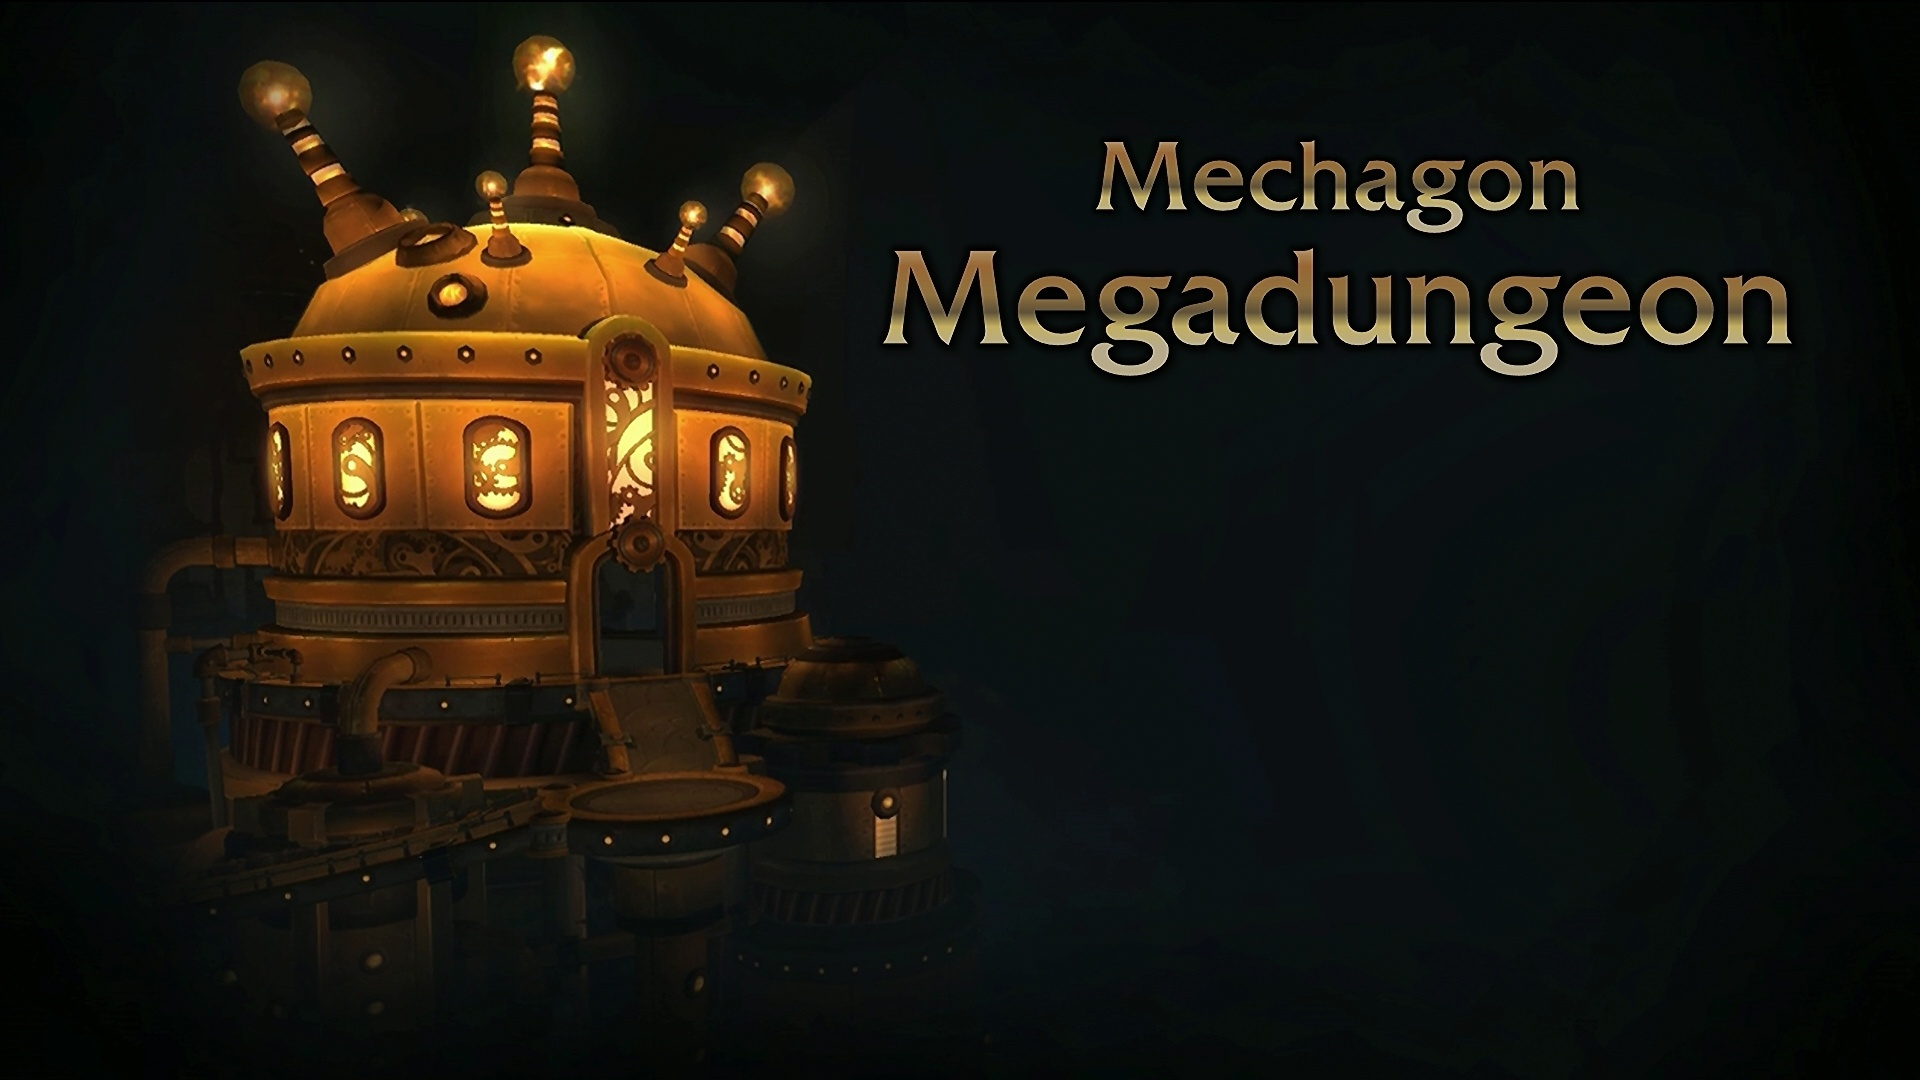 Mechagon Megadungeon